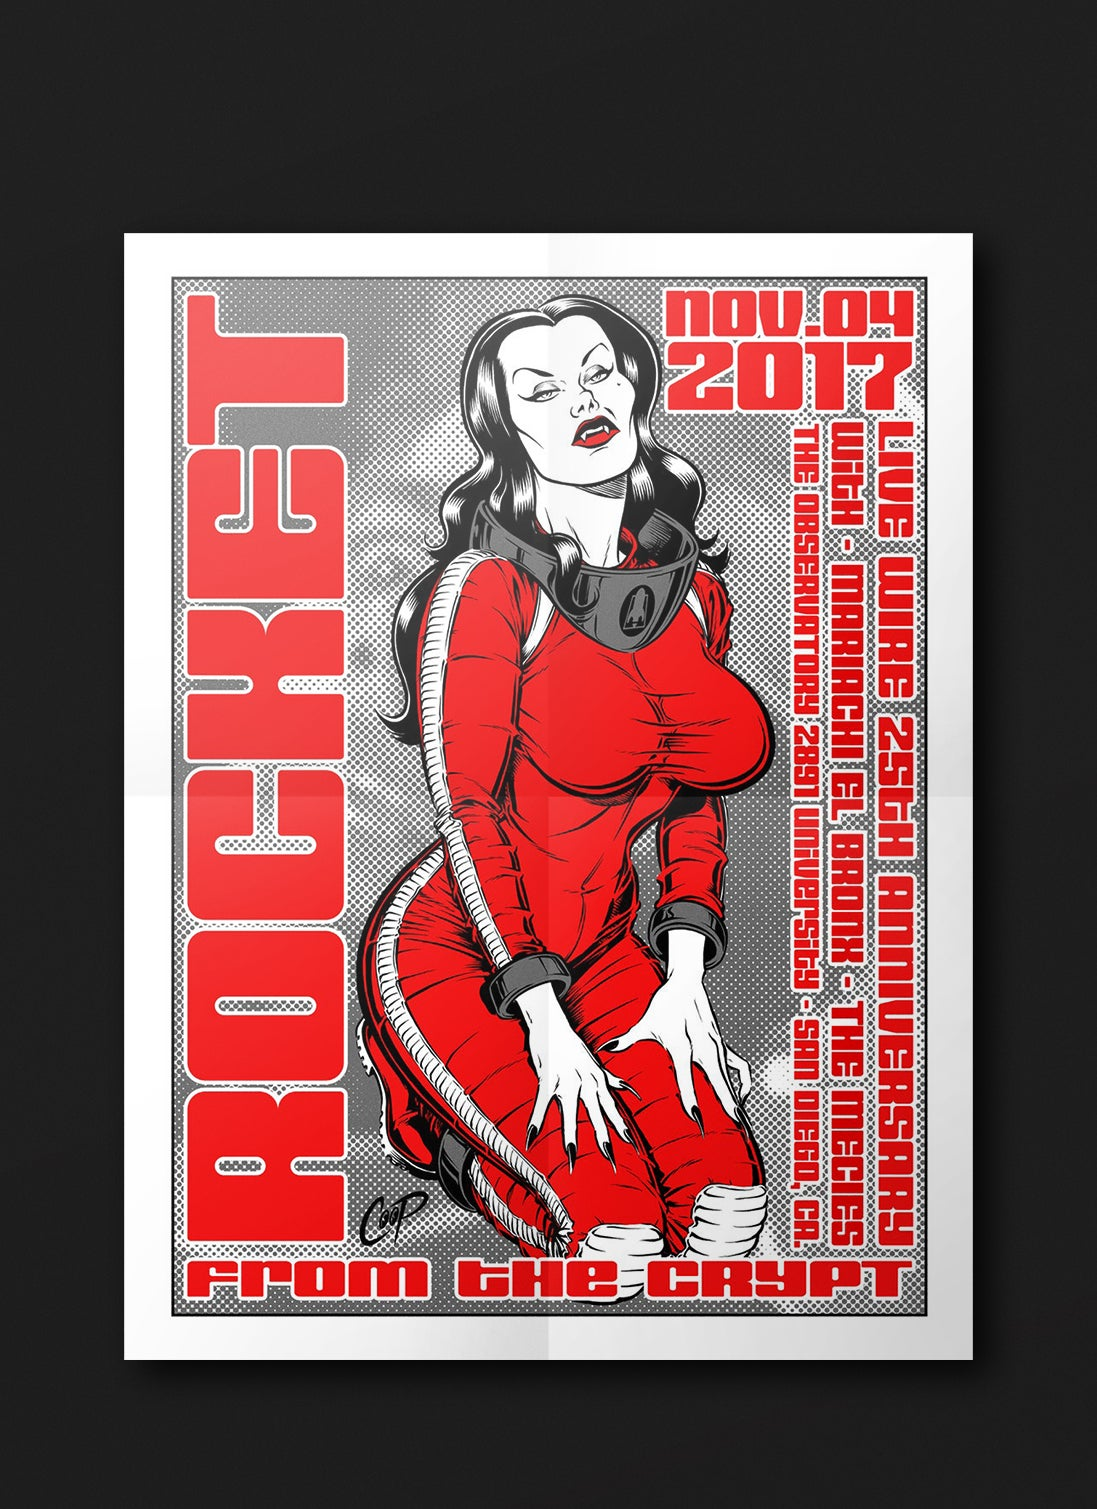 Live Wire, 25th Anniversary Poster